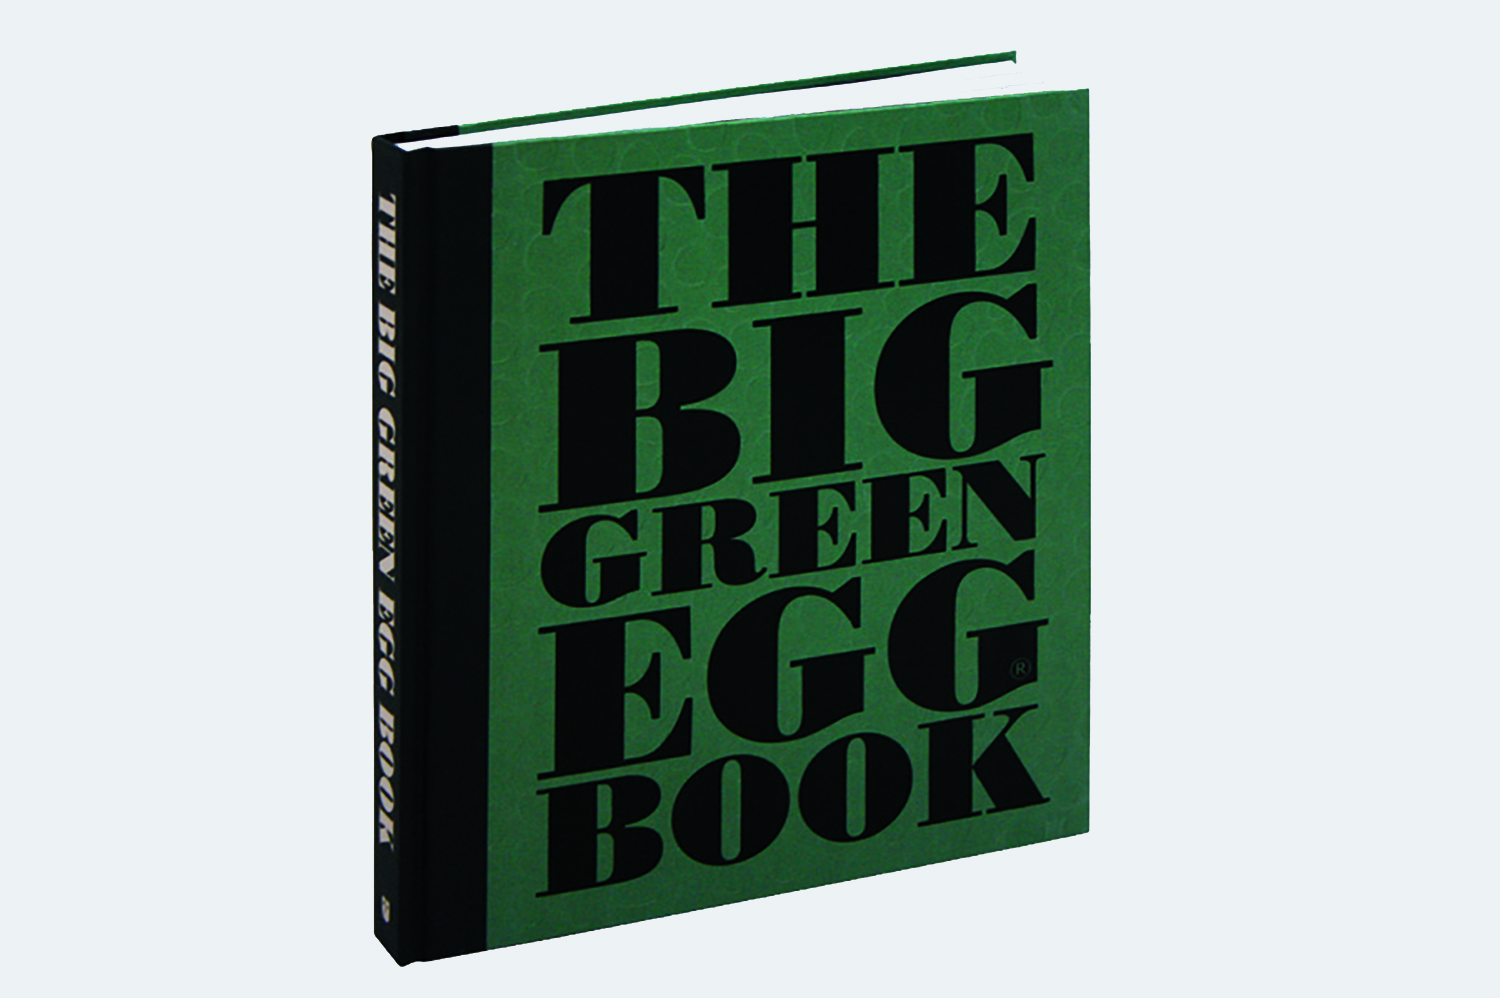 big green egg cookbook recipe